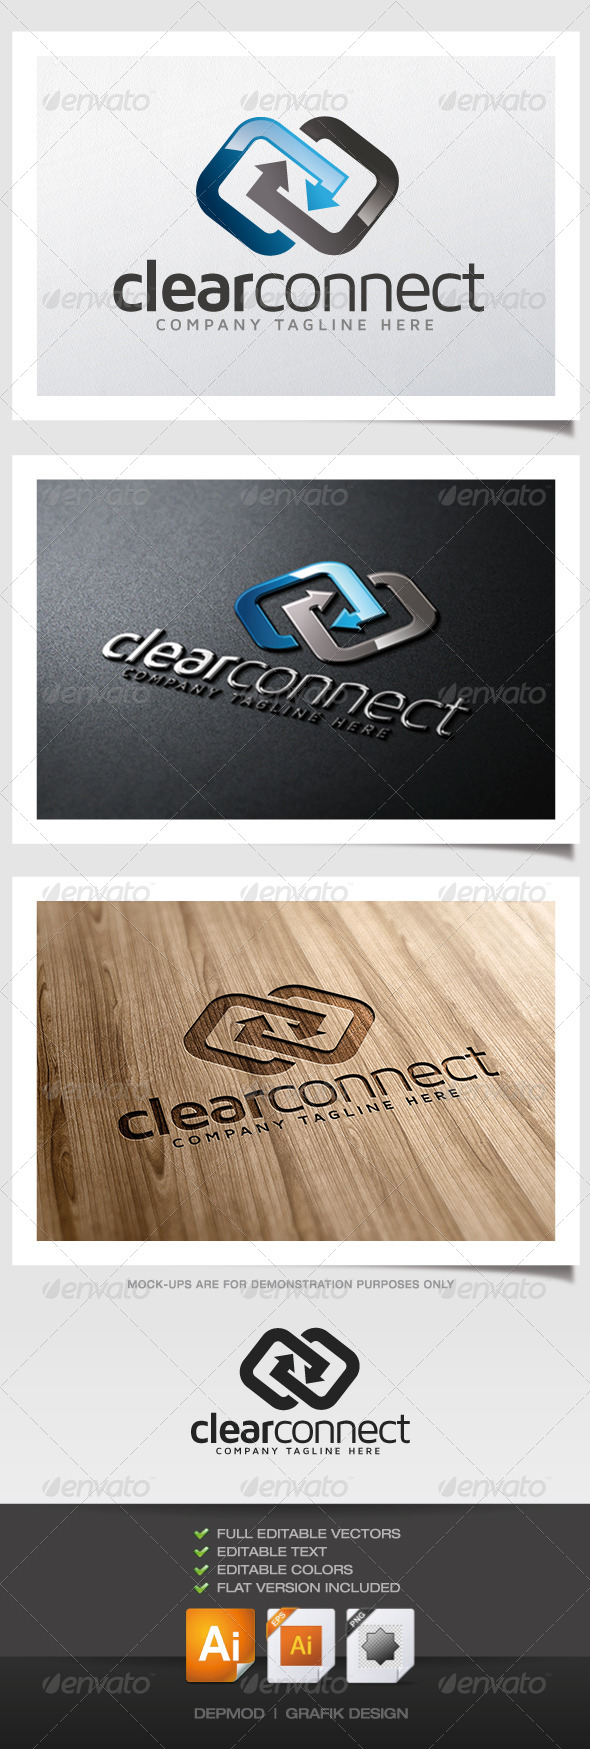 Clear Connect Logo - Abstract Logo Templates